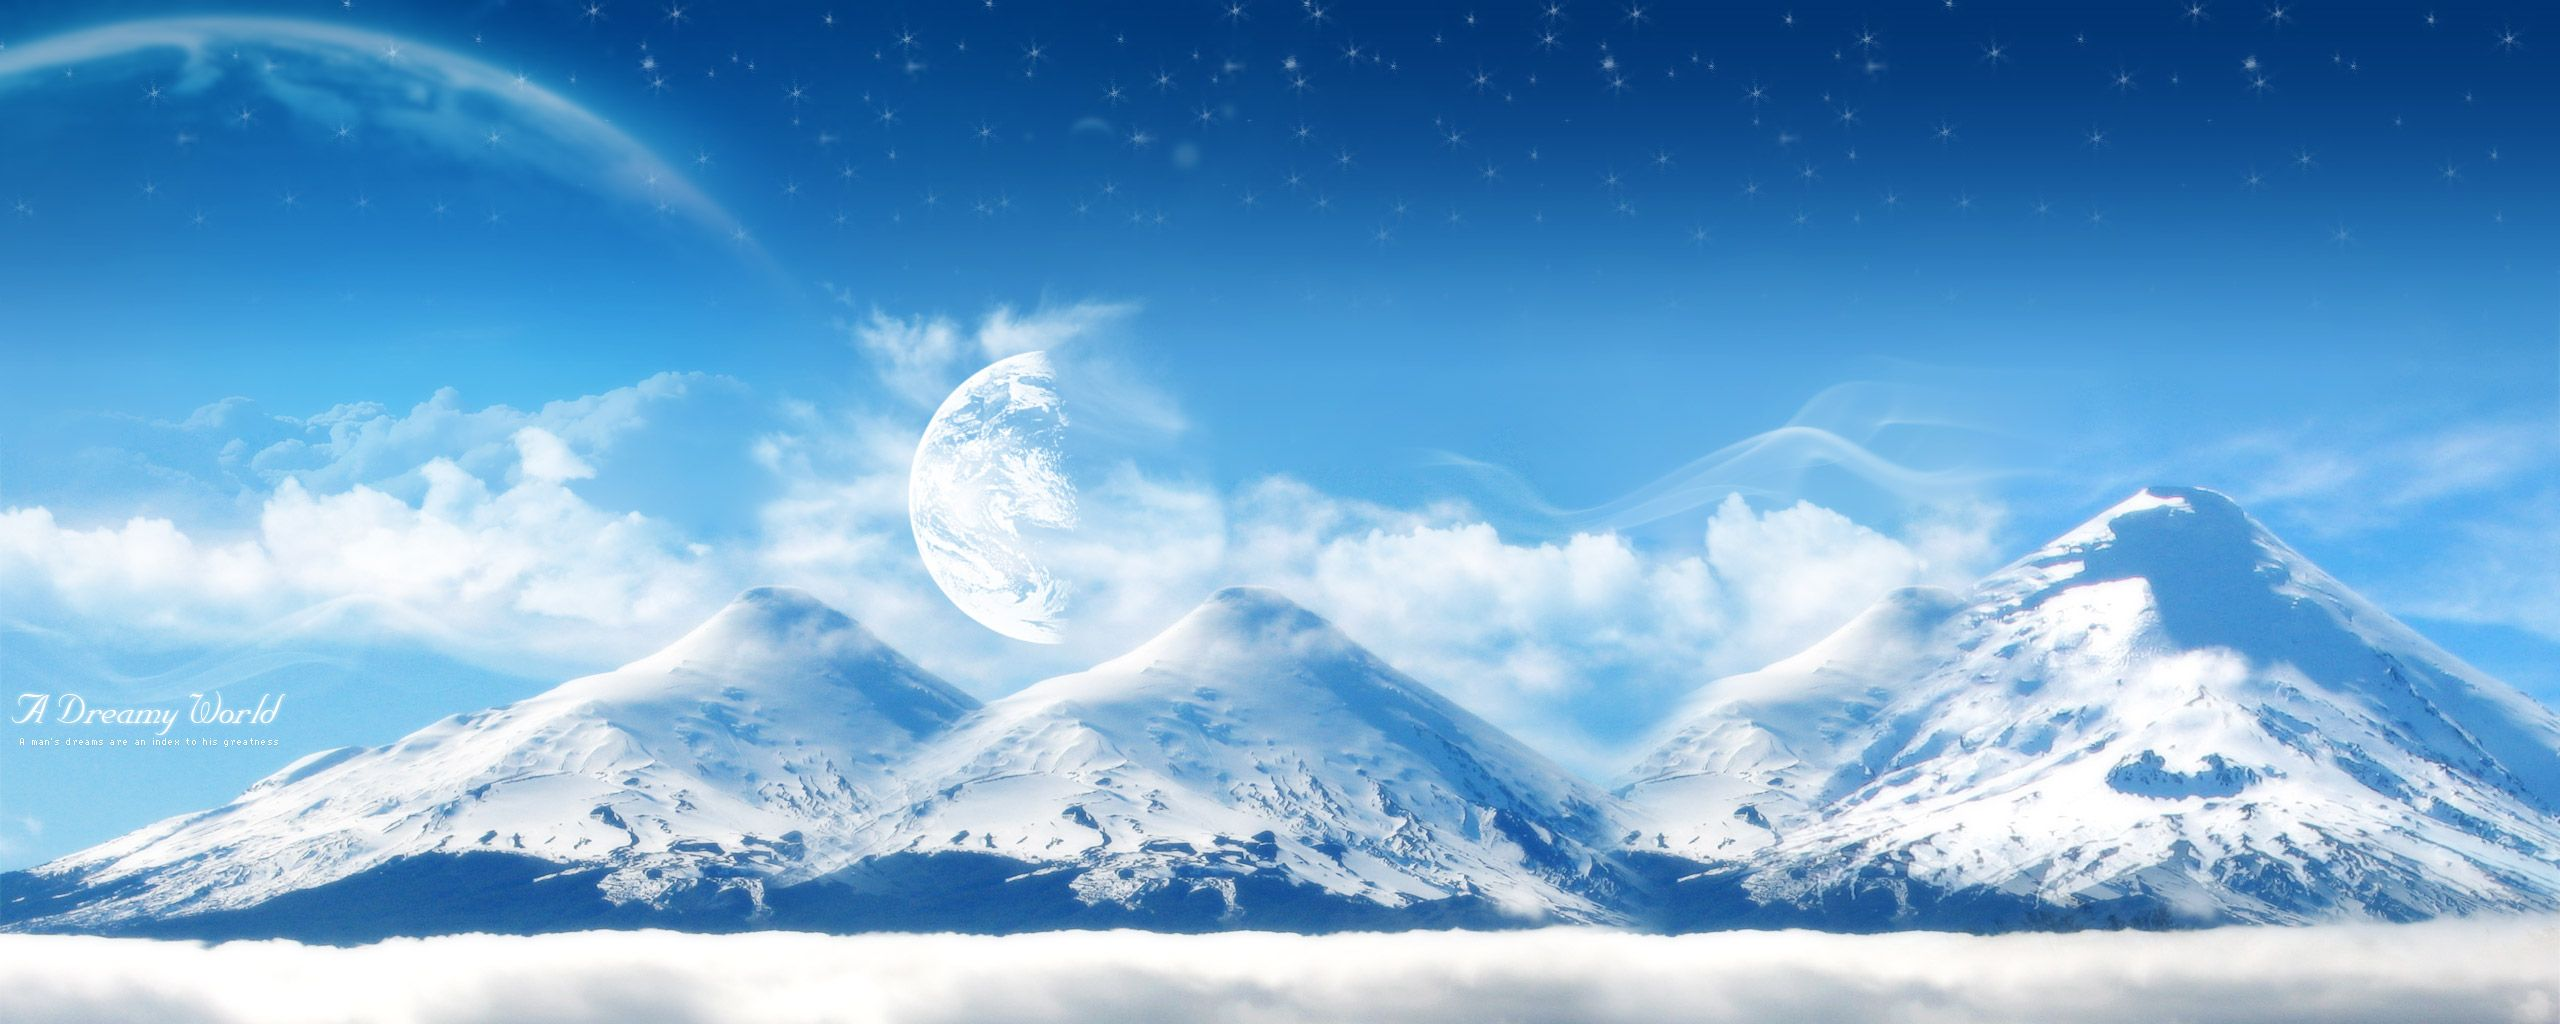 dreamy world snowy mountain wallpaper images photos